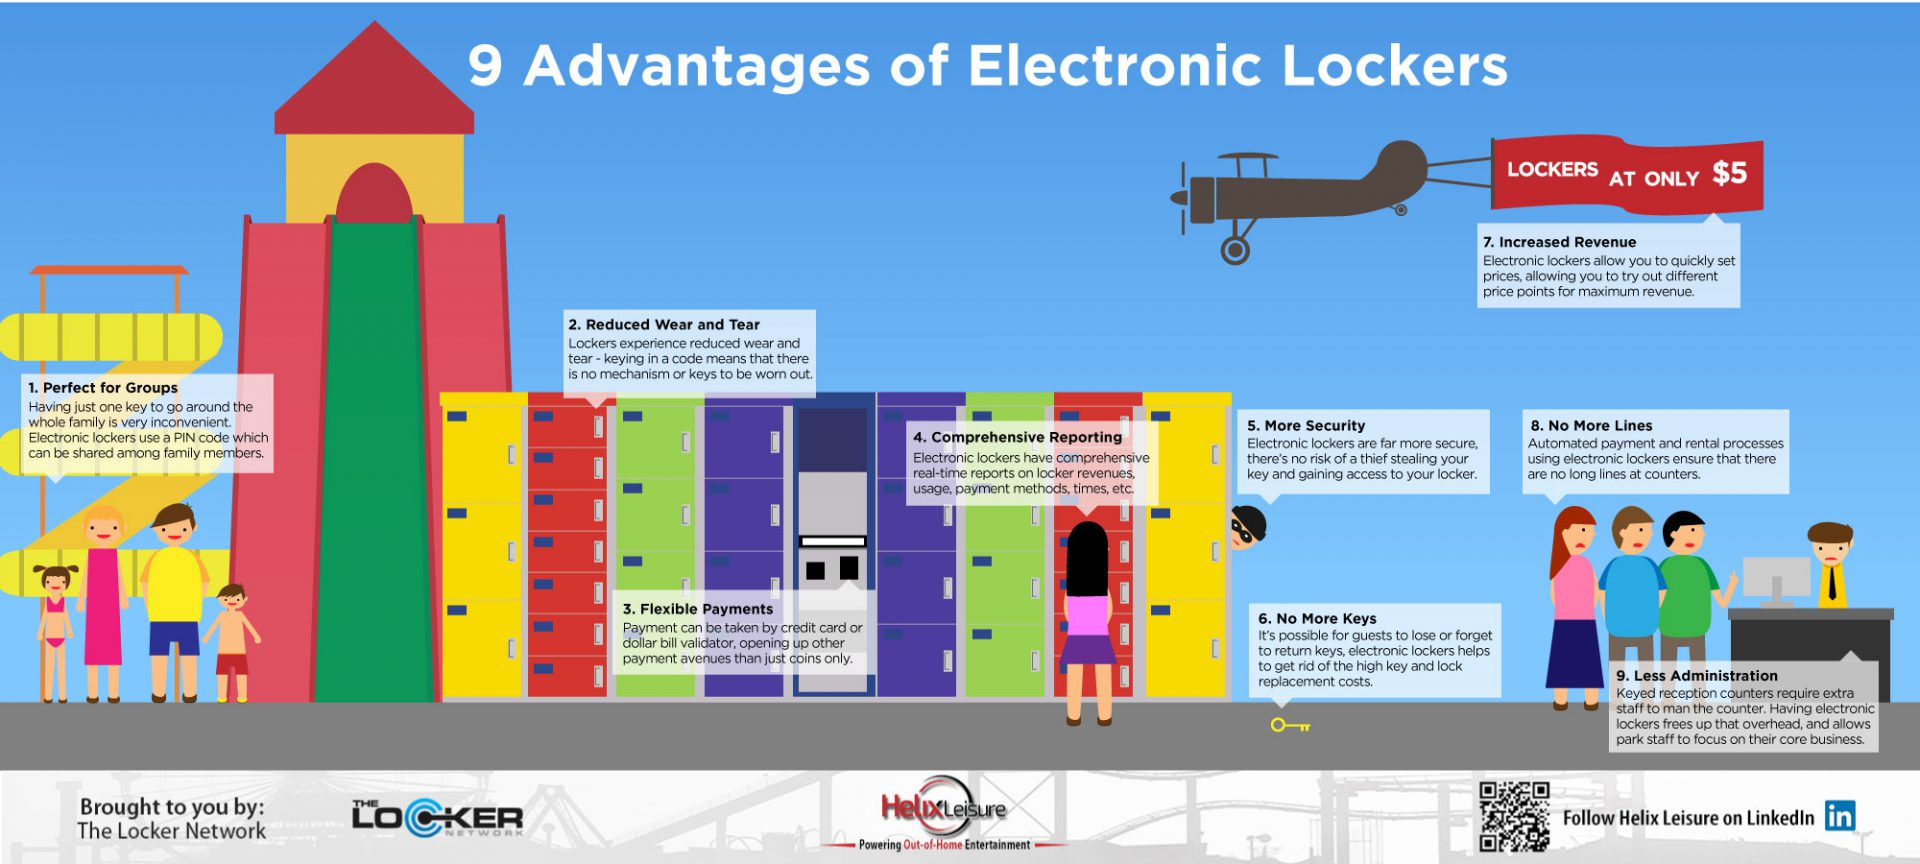 Advantages of Electronic Lockers